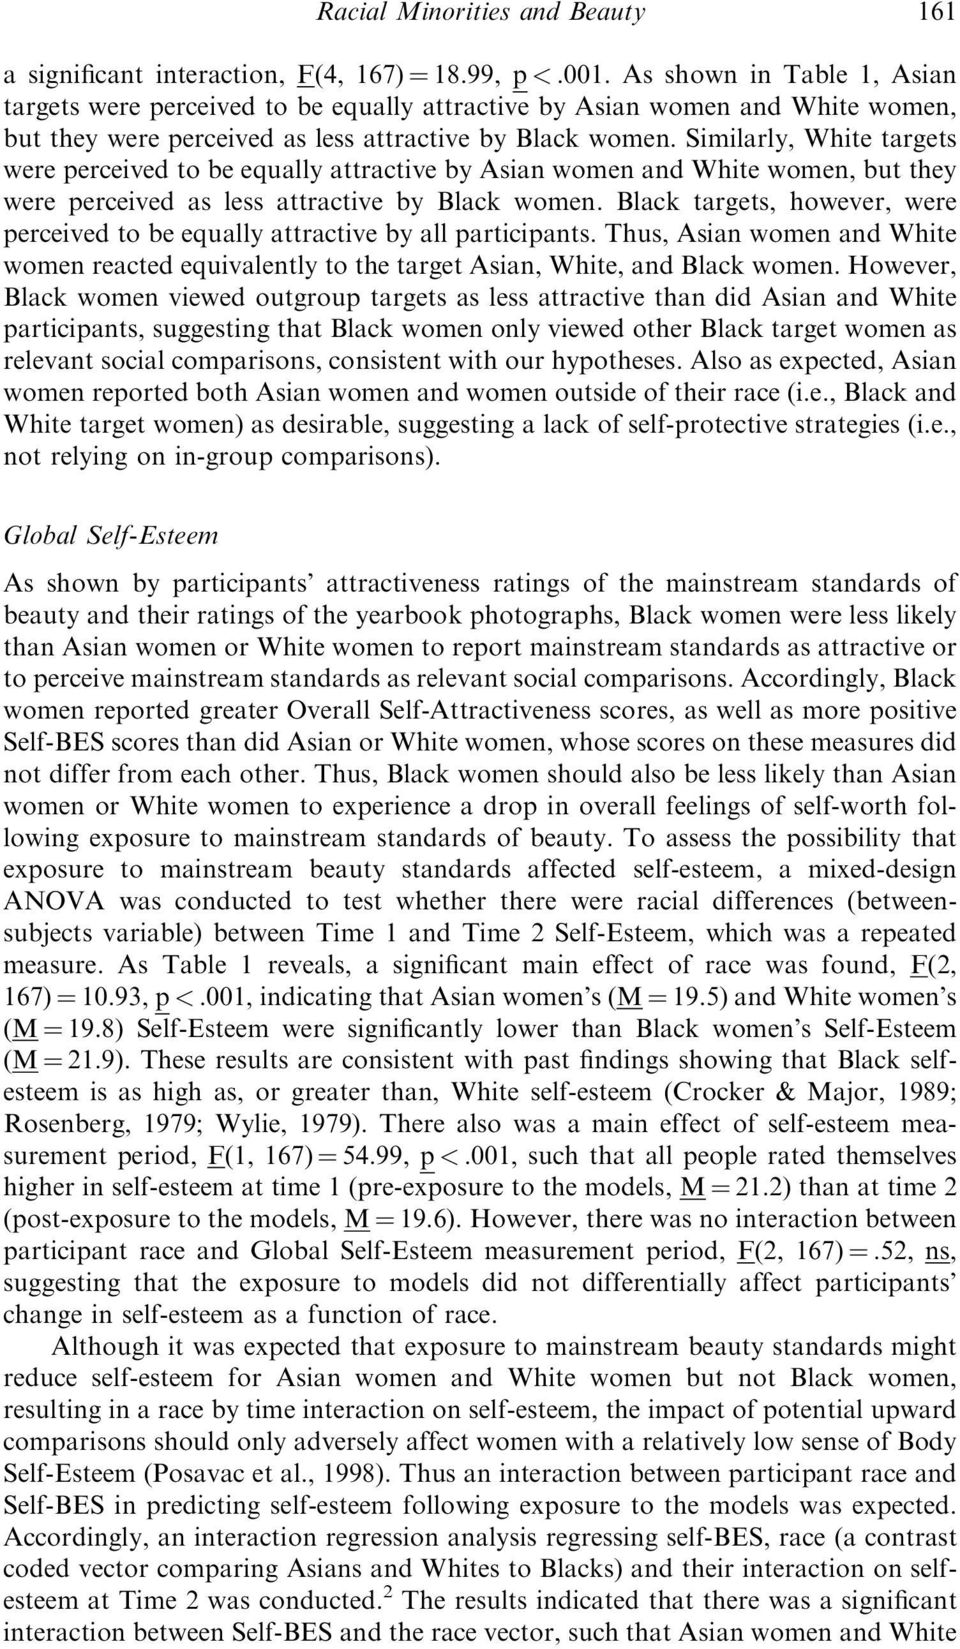 Similarly, White targets were perceived to be equally attractive by Asian women and White women, but they were perceived as less attractive by Black women.